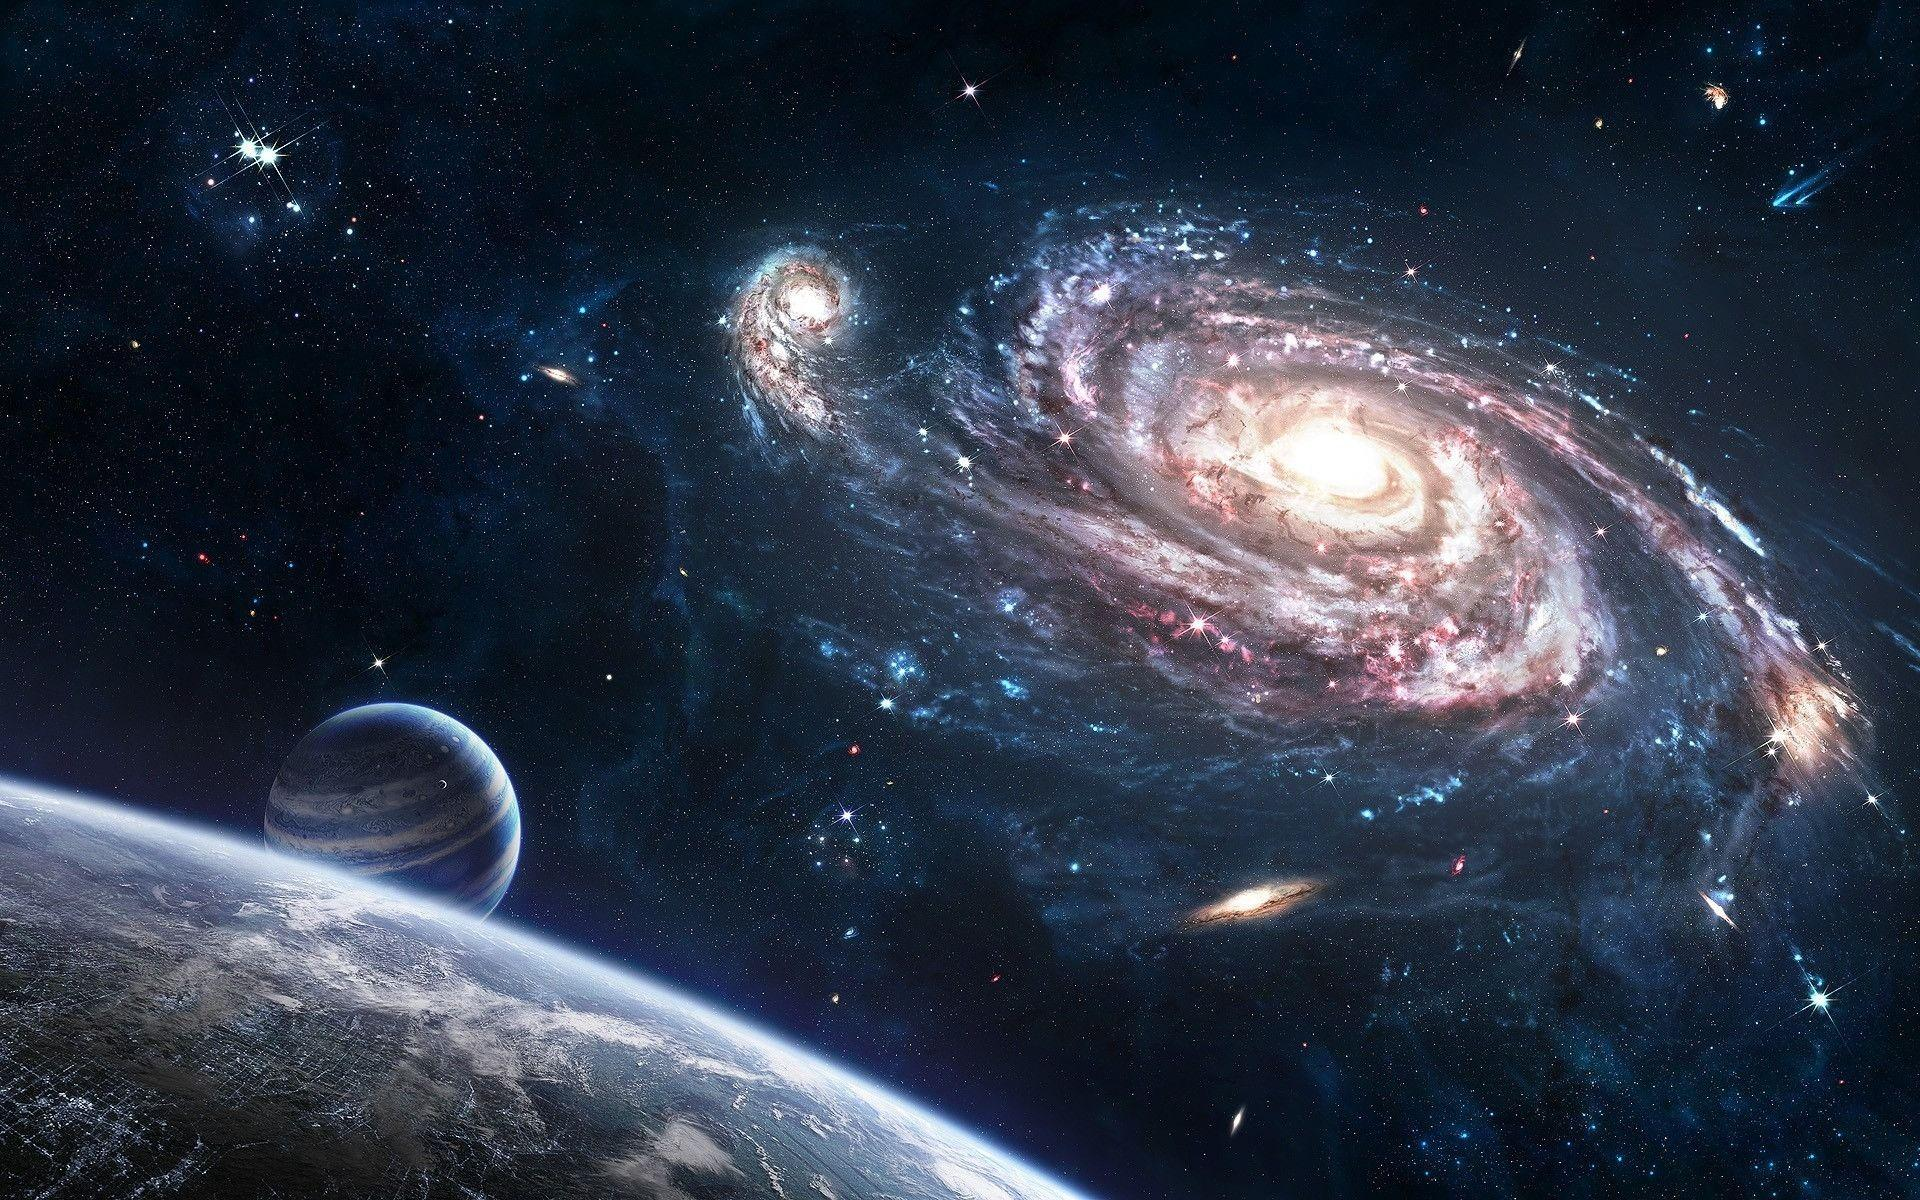 Space planets wallpapers and images - wallpapers, pictures, photos